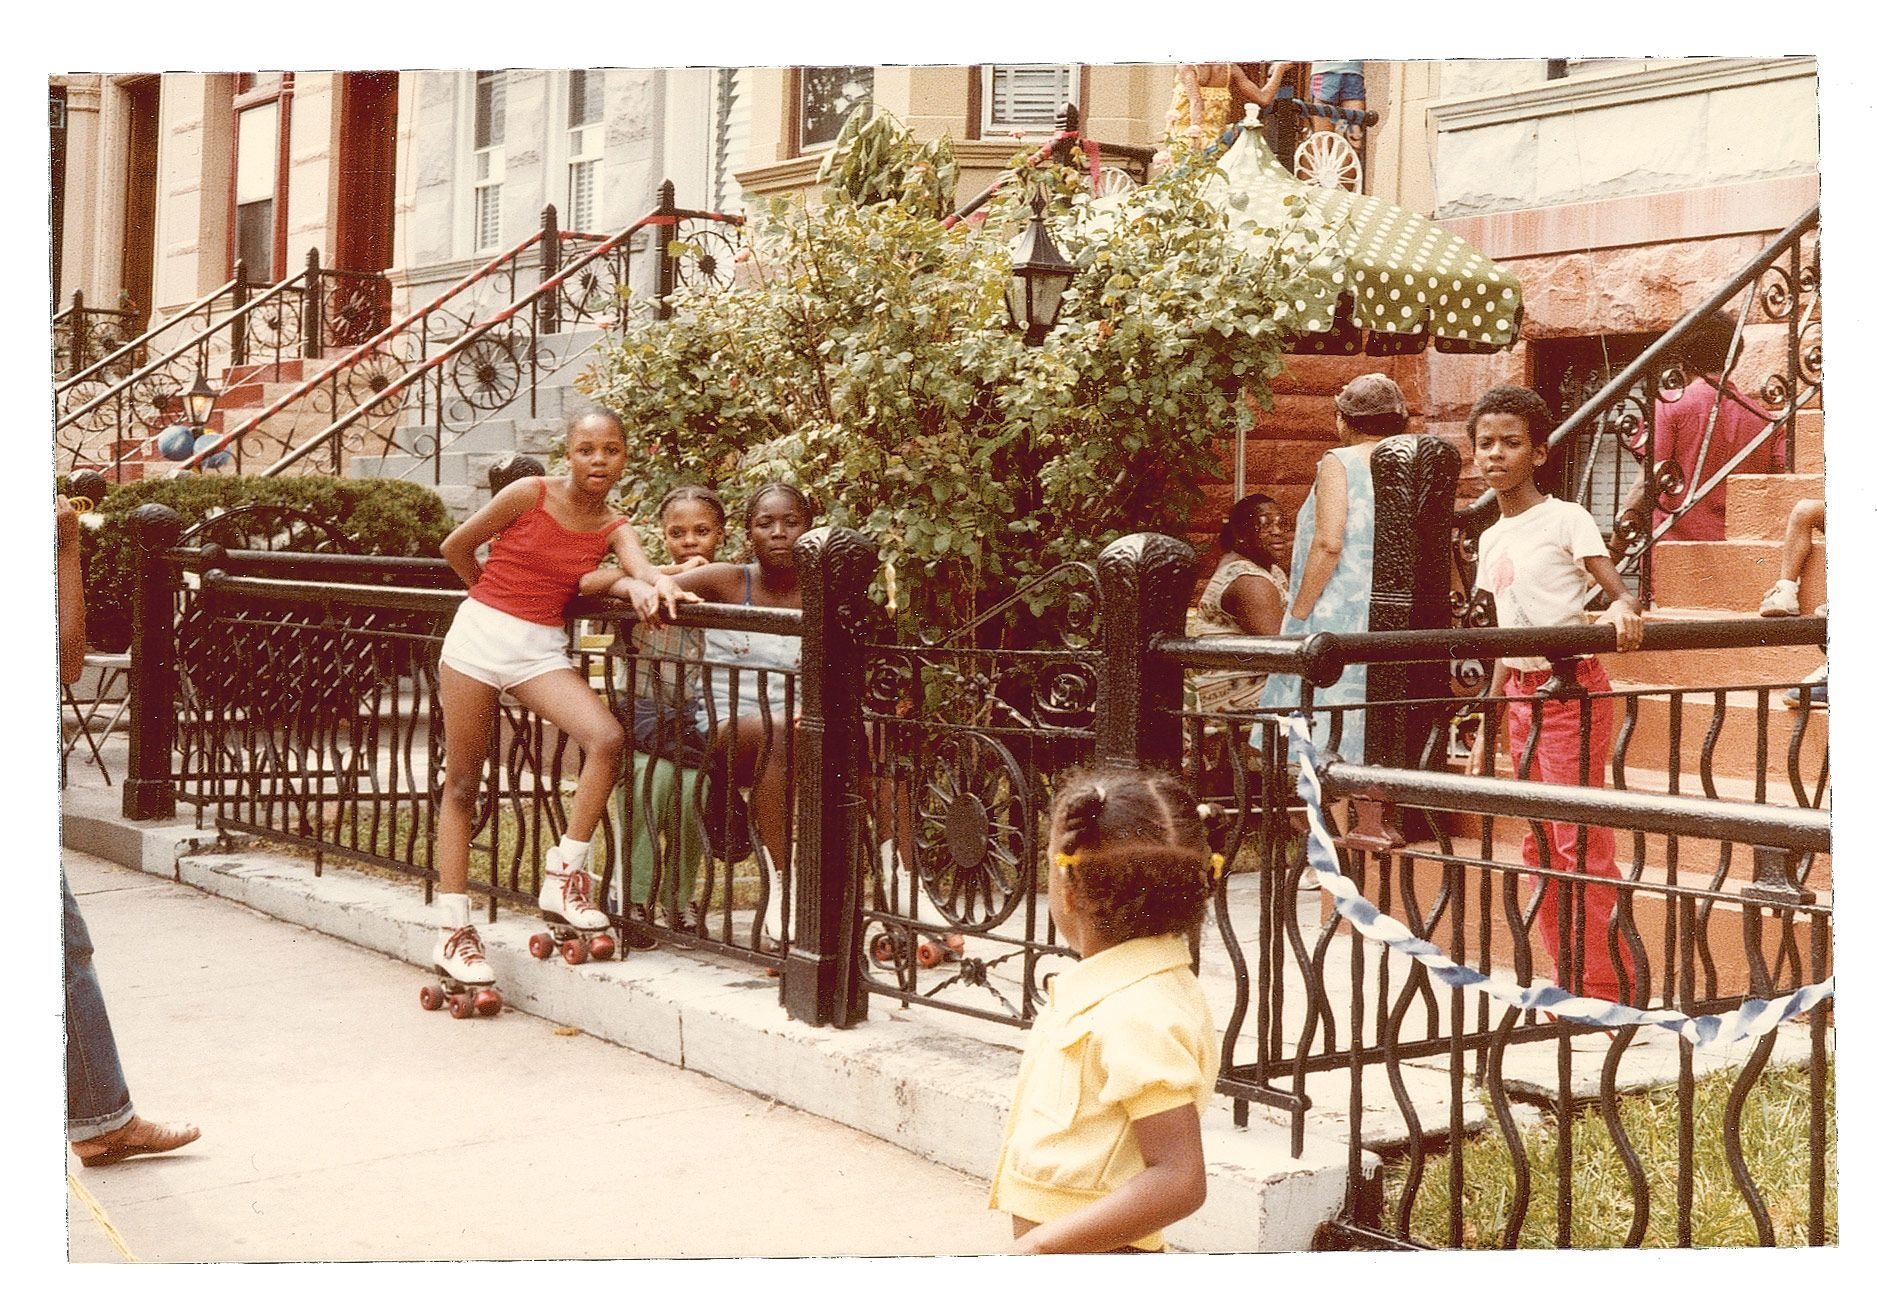 A Scene From The Block Party, Circa Late 1970s